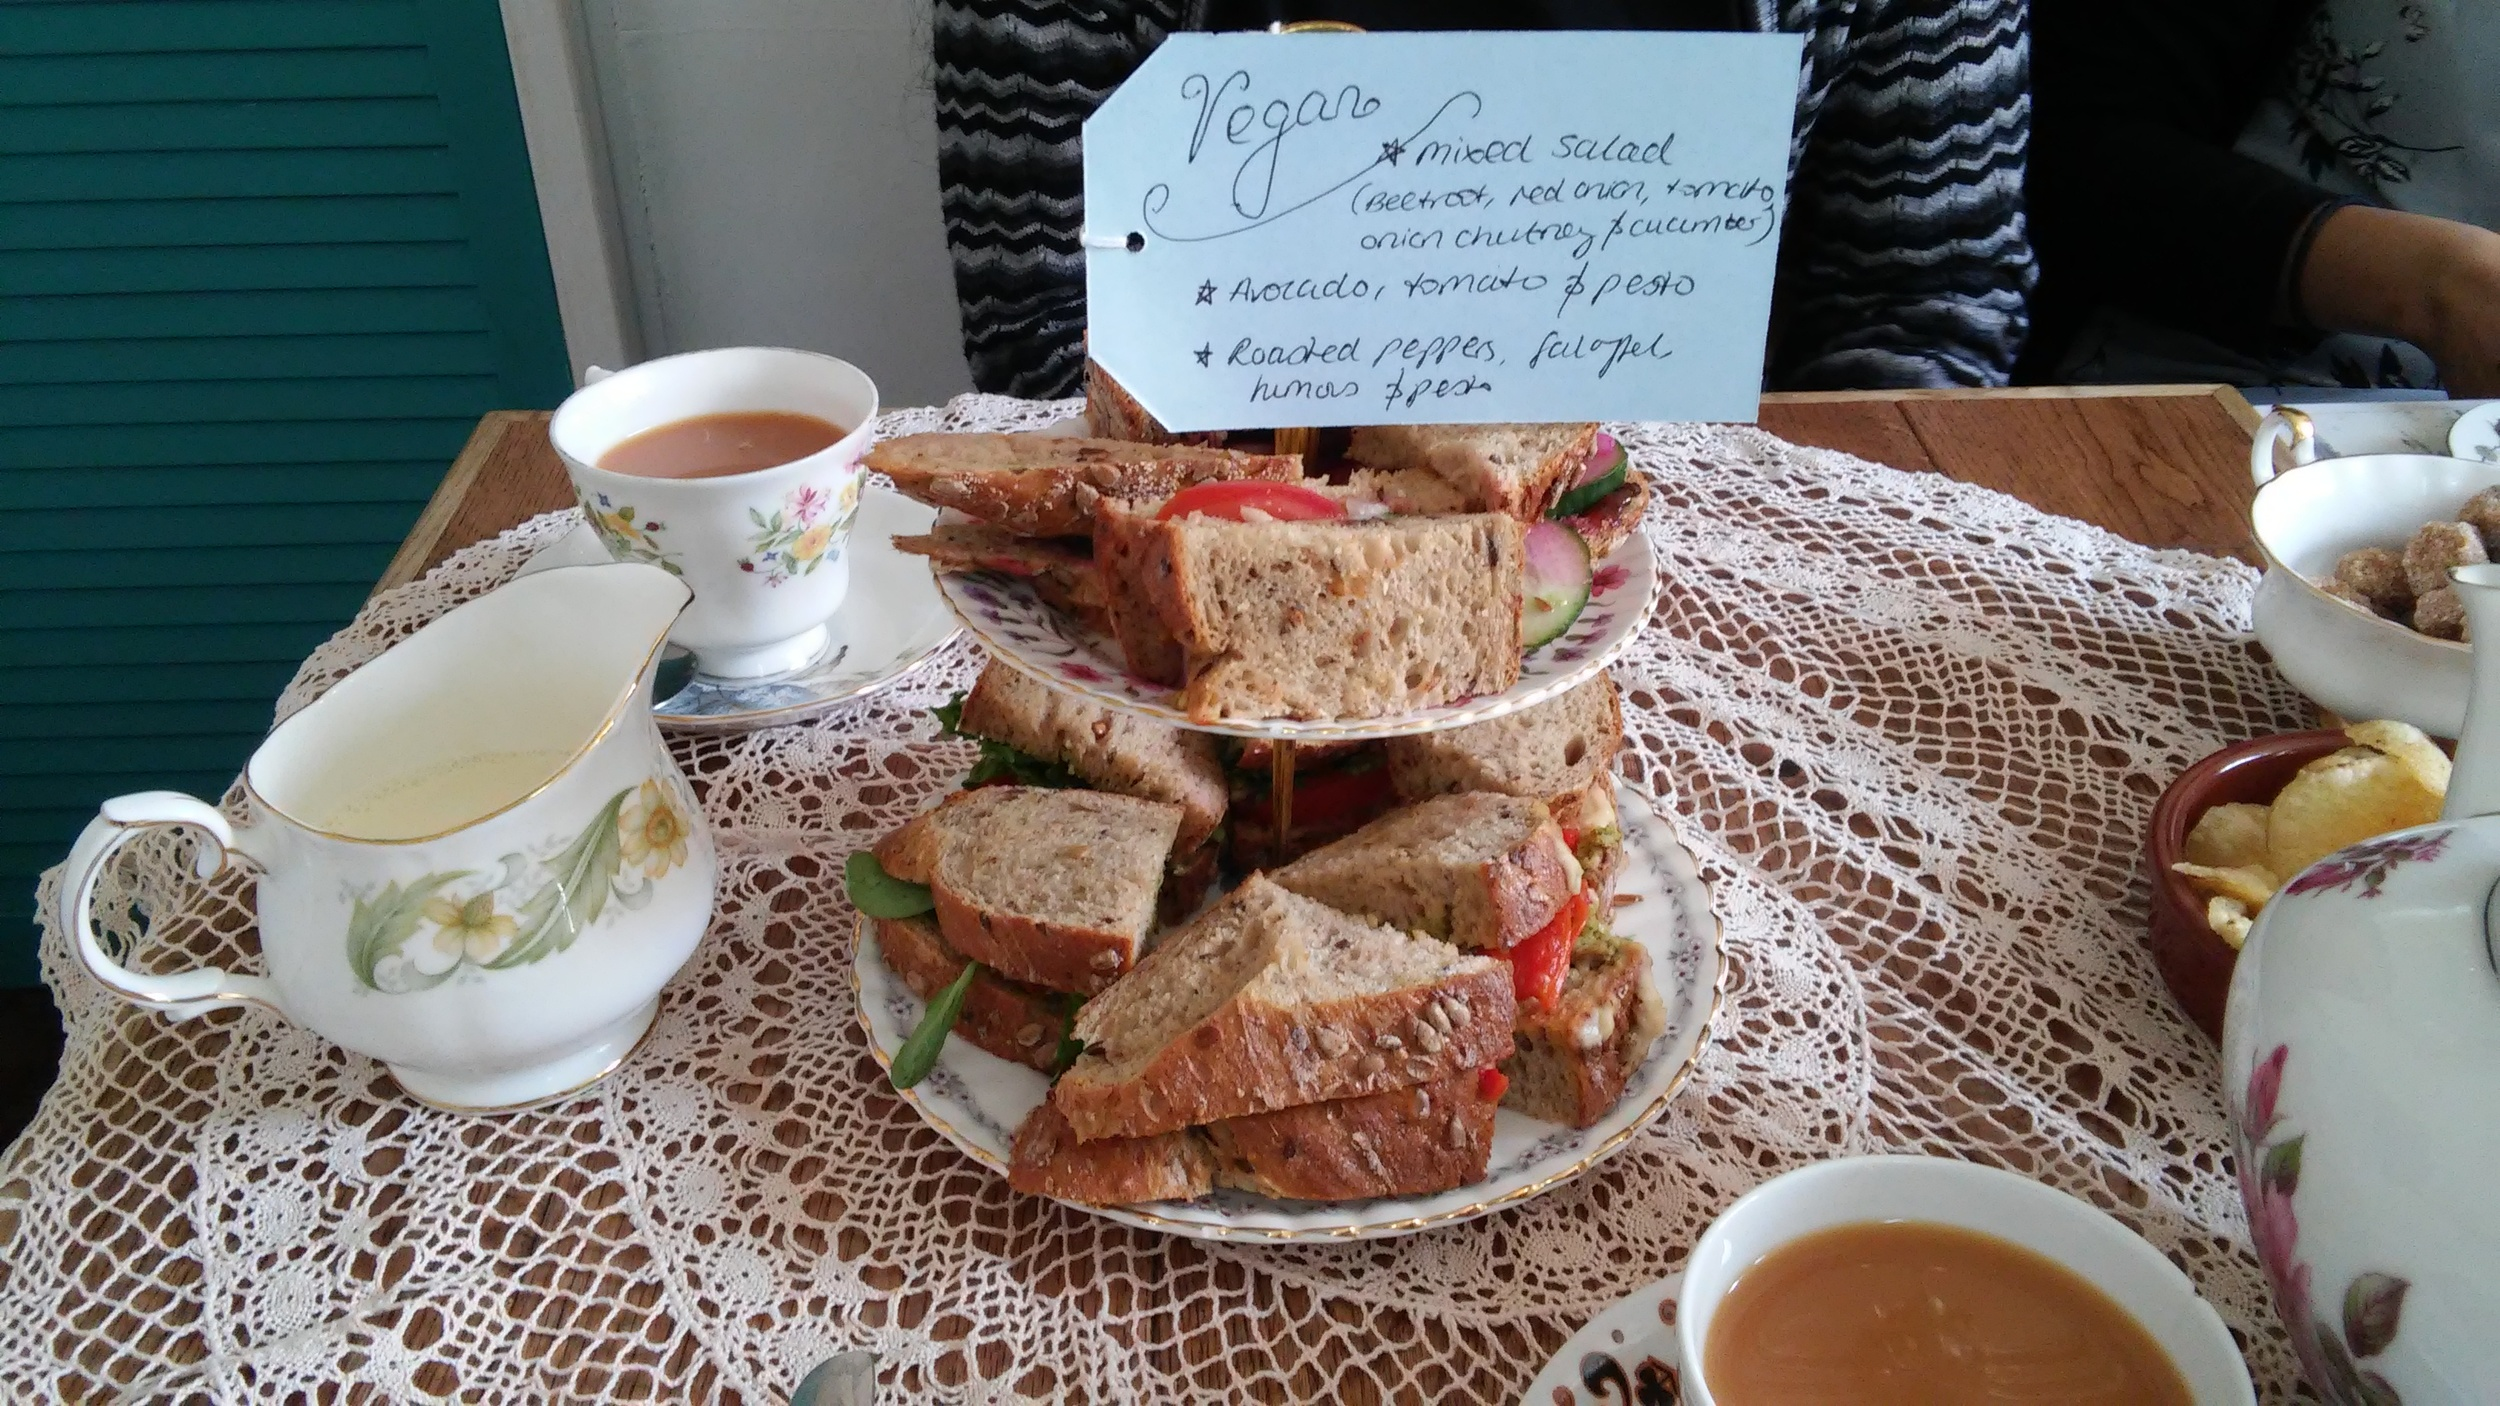 Vegan afternoon tea